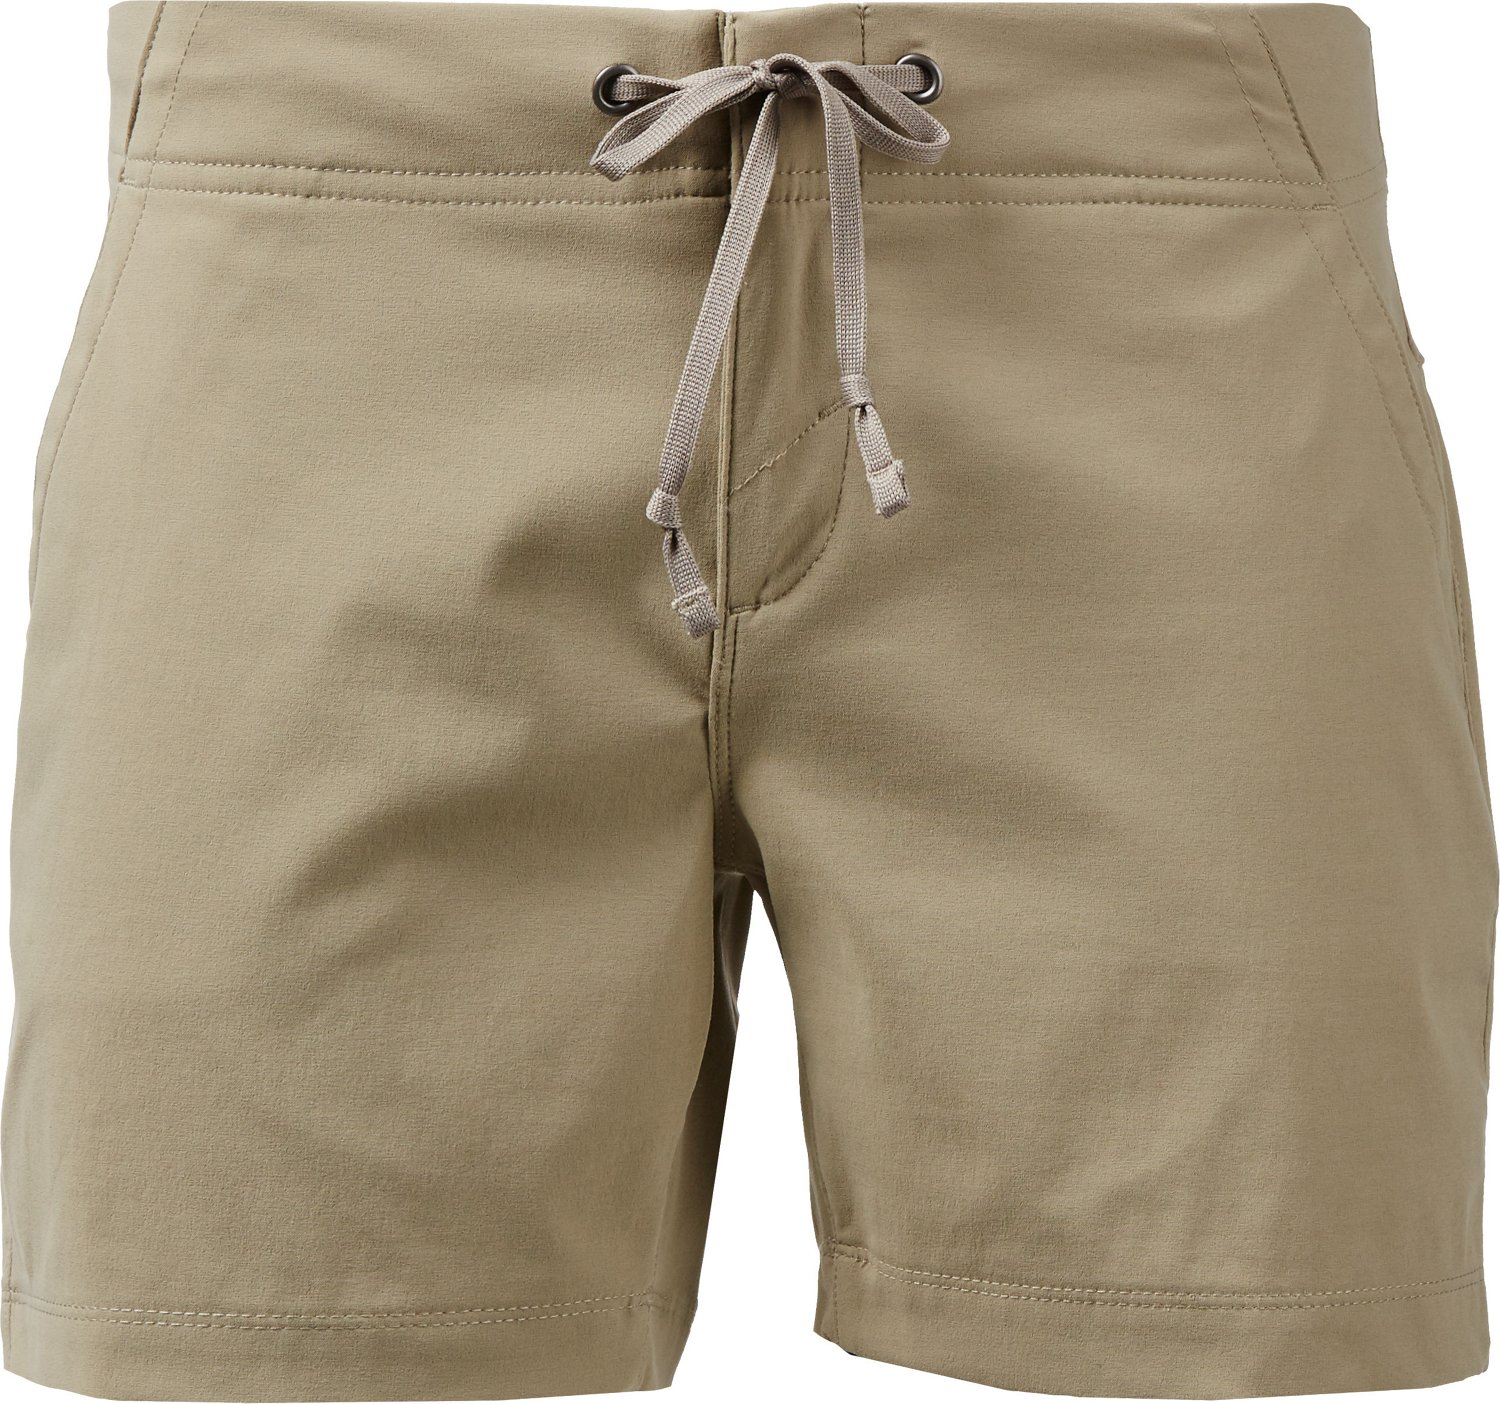 1f519183c8 Display product reviews for Columbia Sportswear Women's Anytime Outdoor  Short